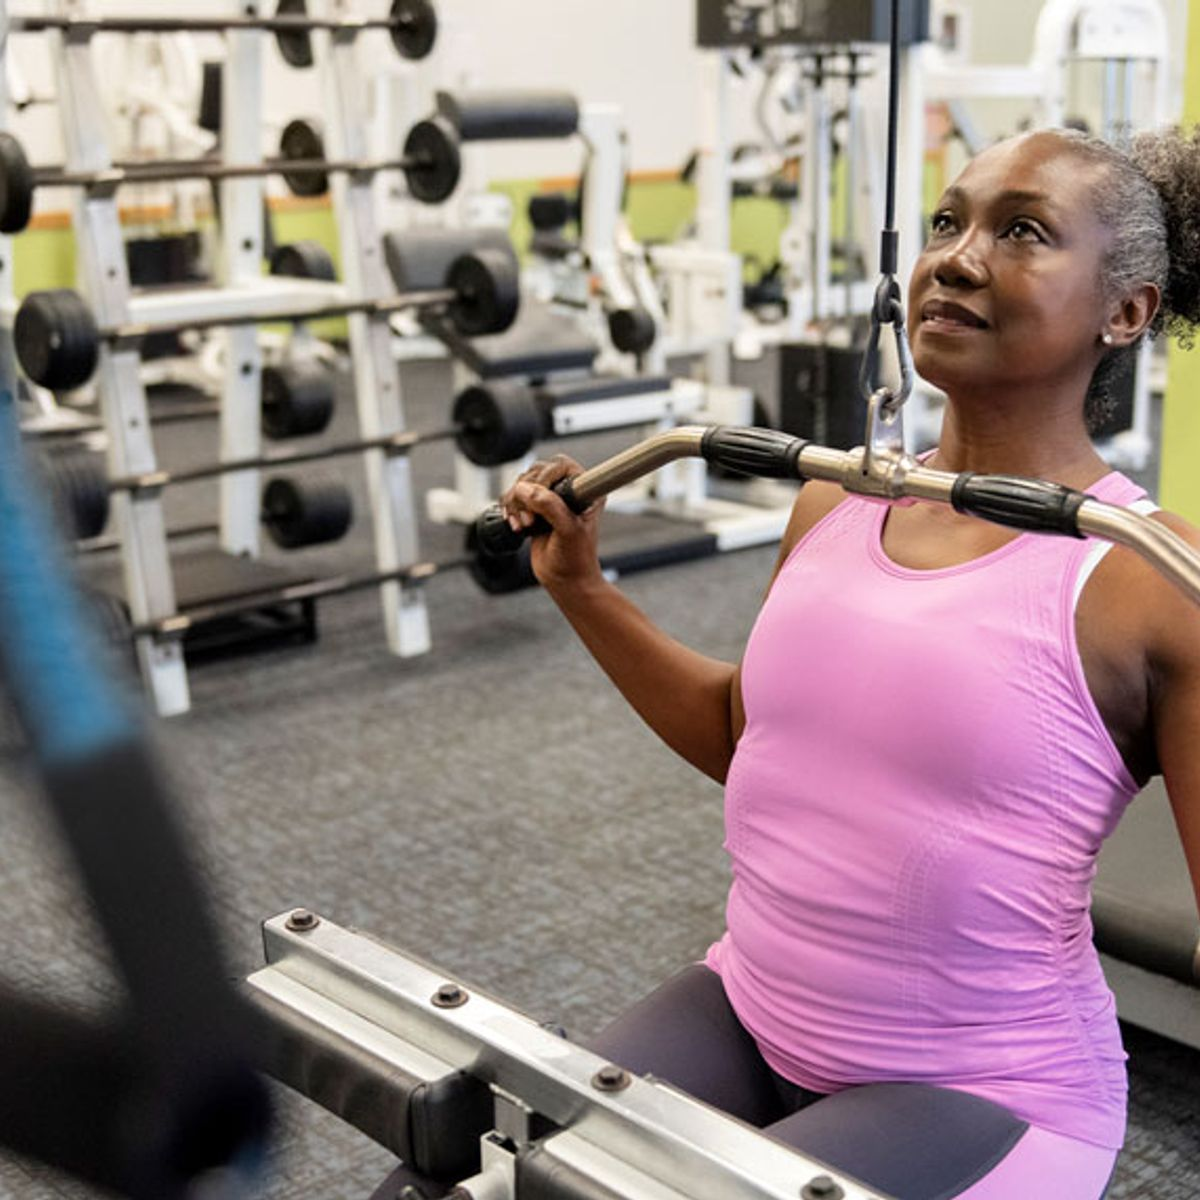 Exercise stops your brain from shrinking, researchers say